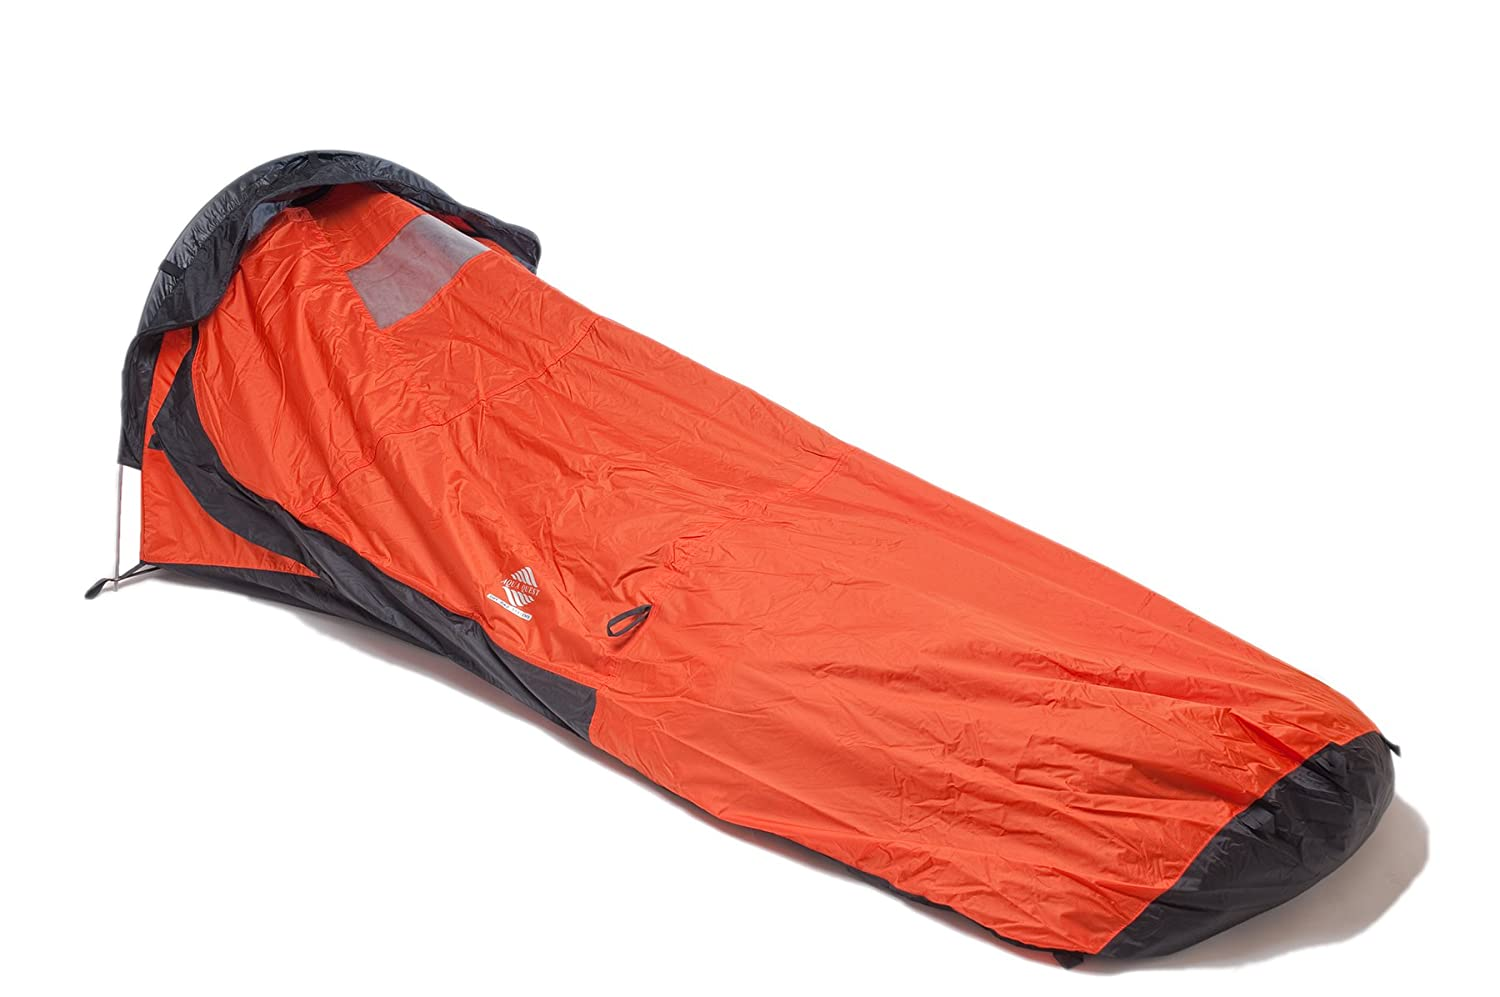 Aqua-Quest Waterproof & Breathable Ultra Light Multi Season One Man Tent